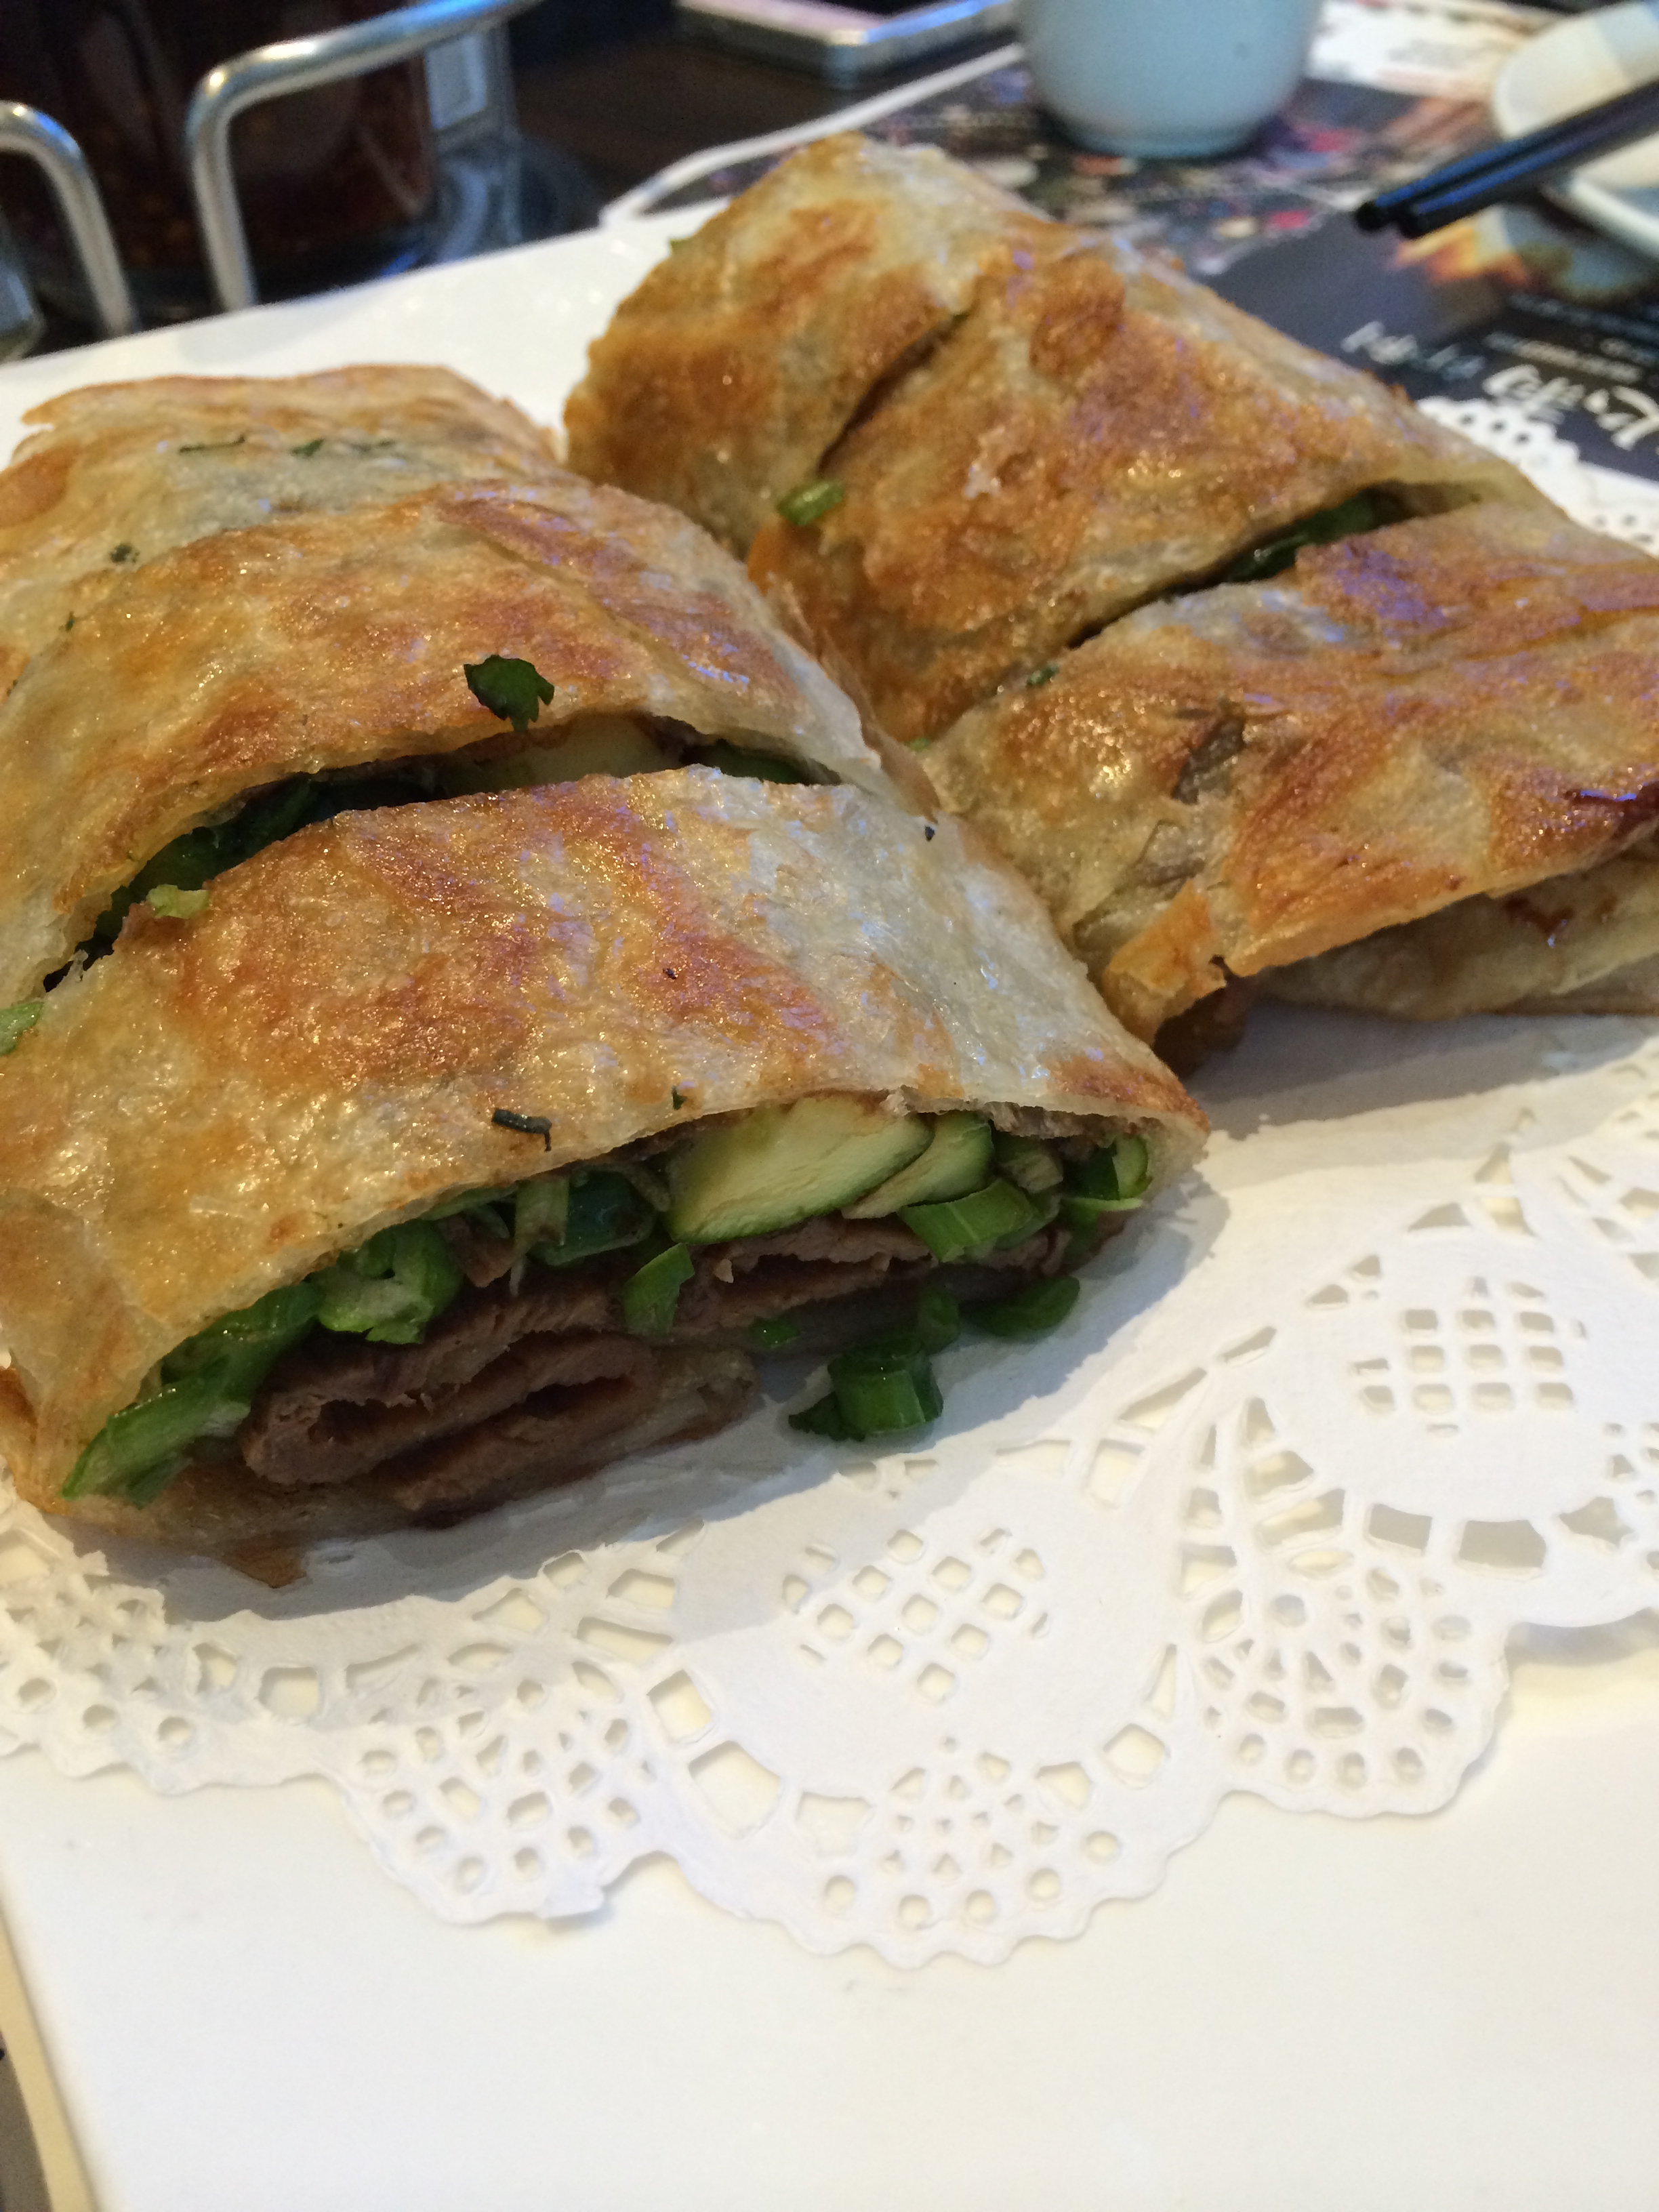 Beef roll - green onion pancake with beef, cilantro, cucumber and asparagus